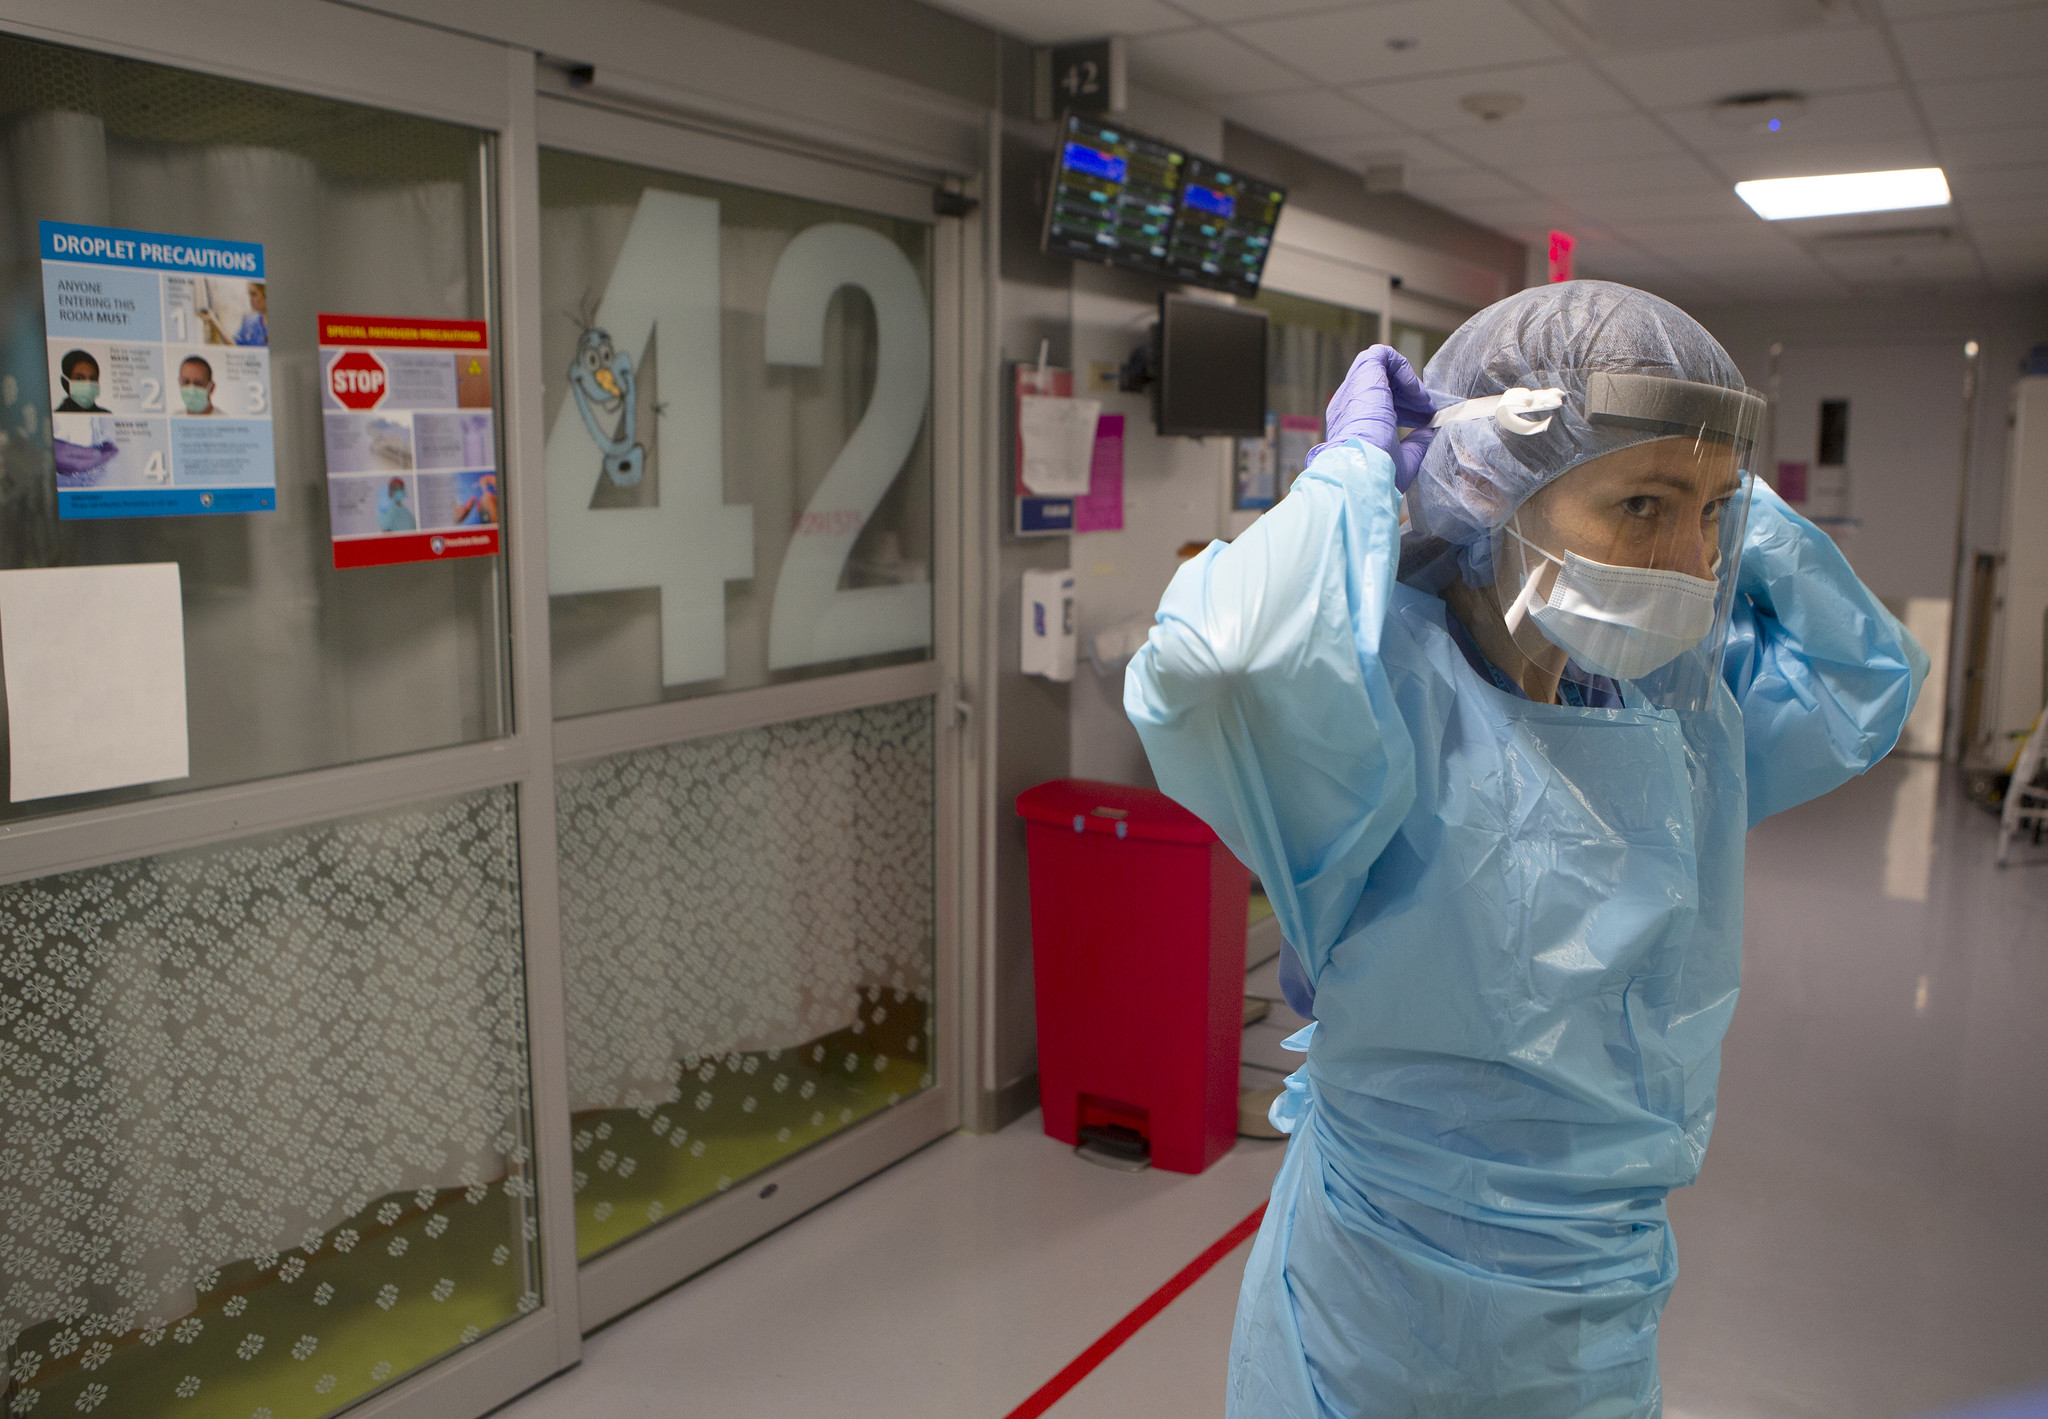 Dr. Jennifer Cooper adjusts her personal protective equipment outside a hospital room.